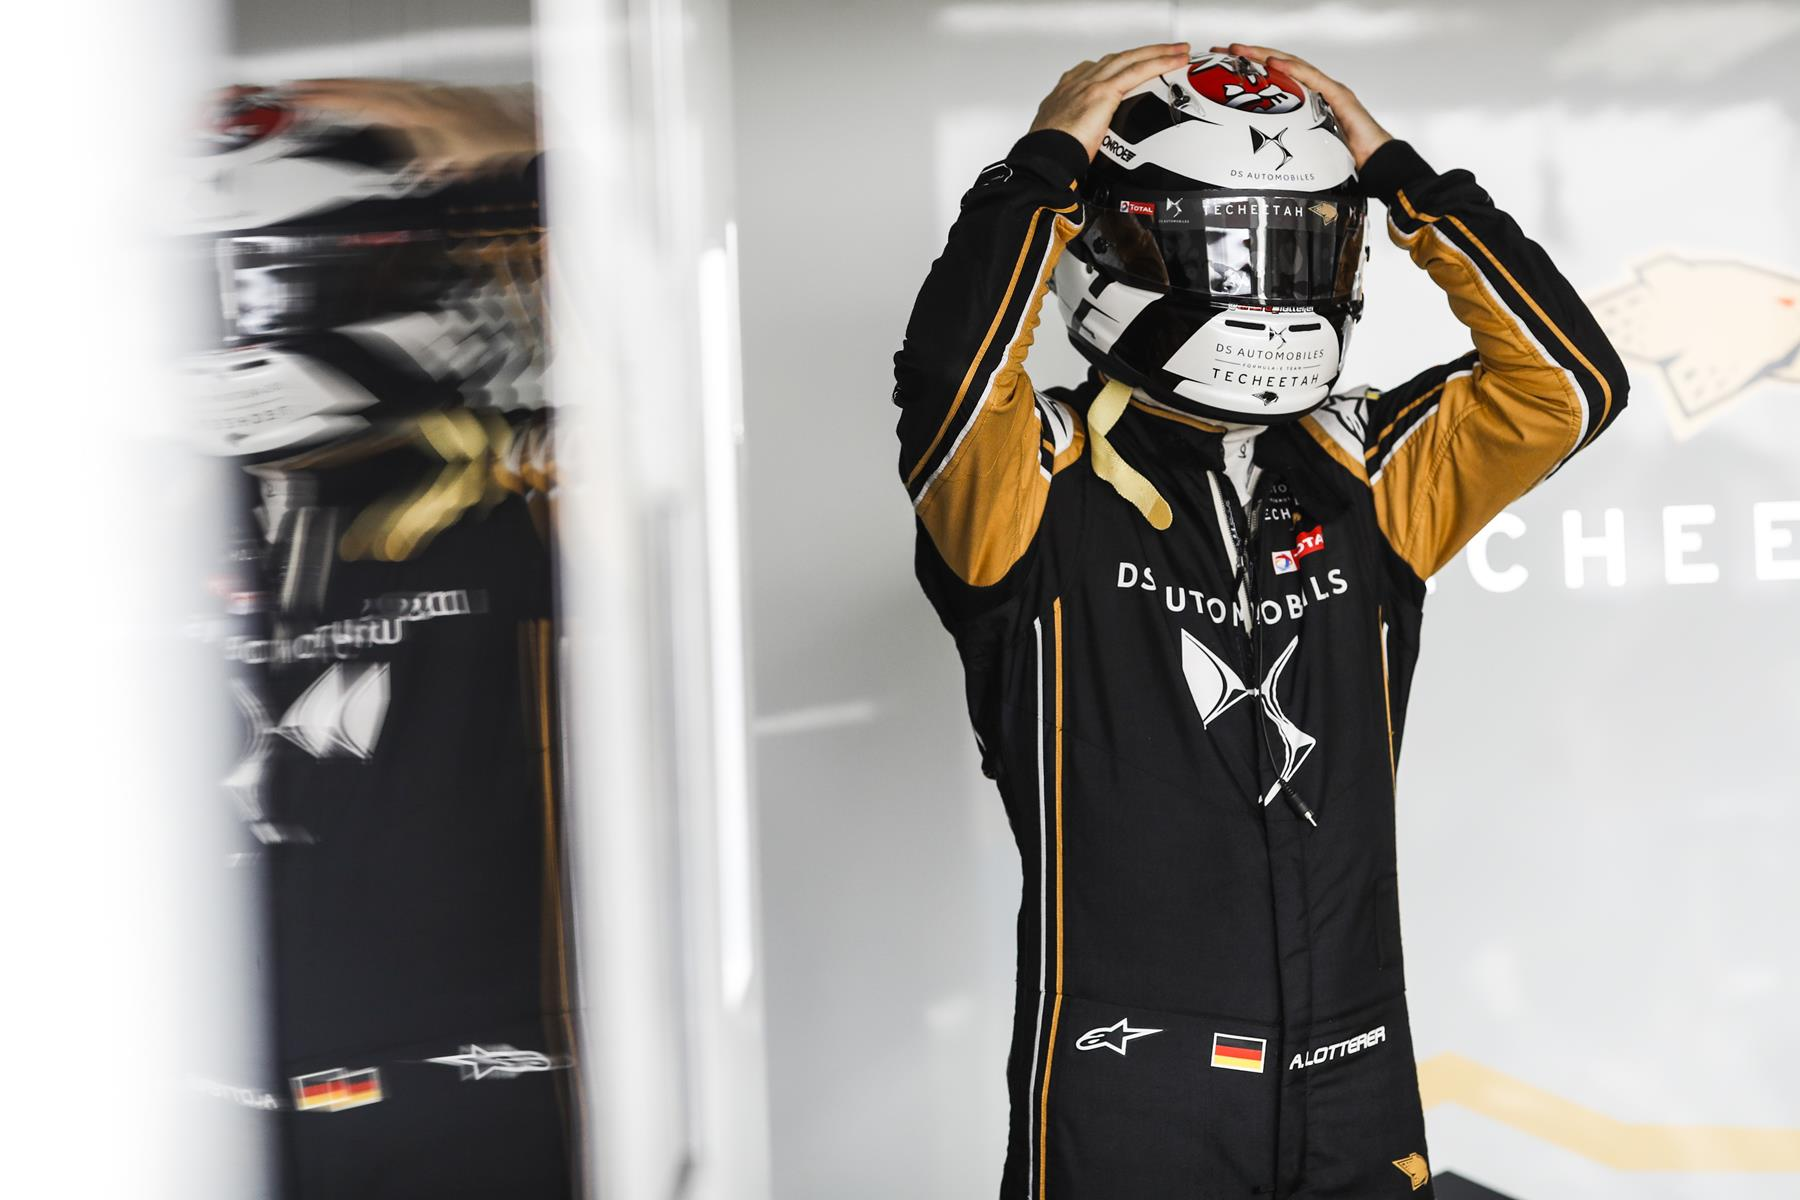 Andre-Lotterer-disappointed-in-Garage